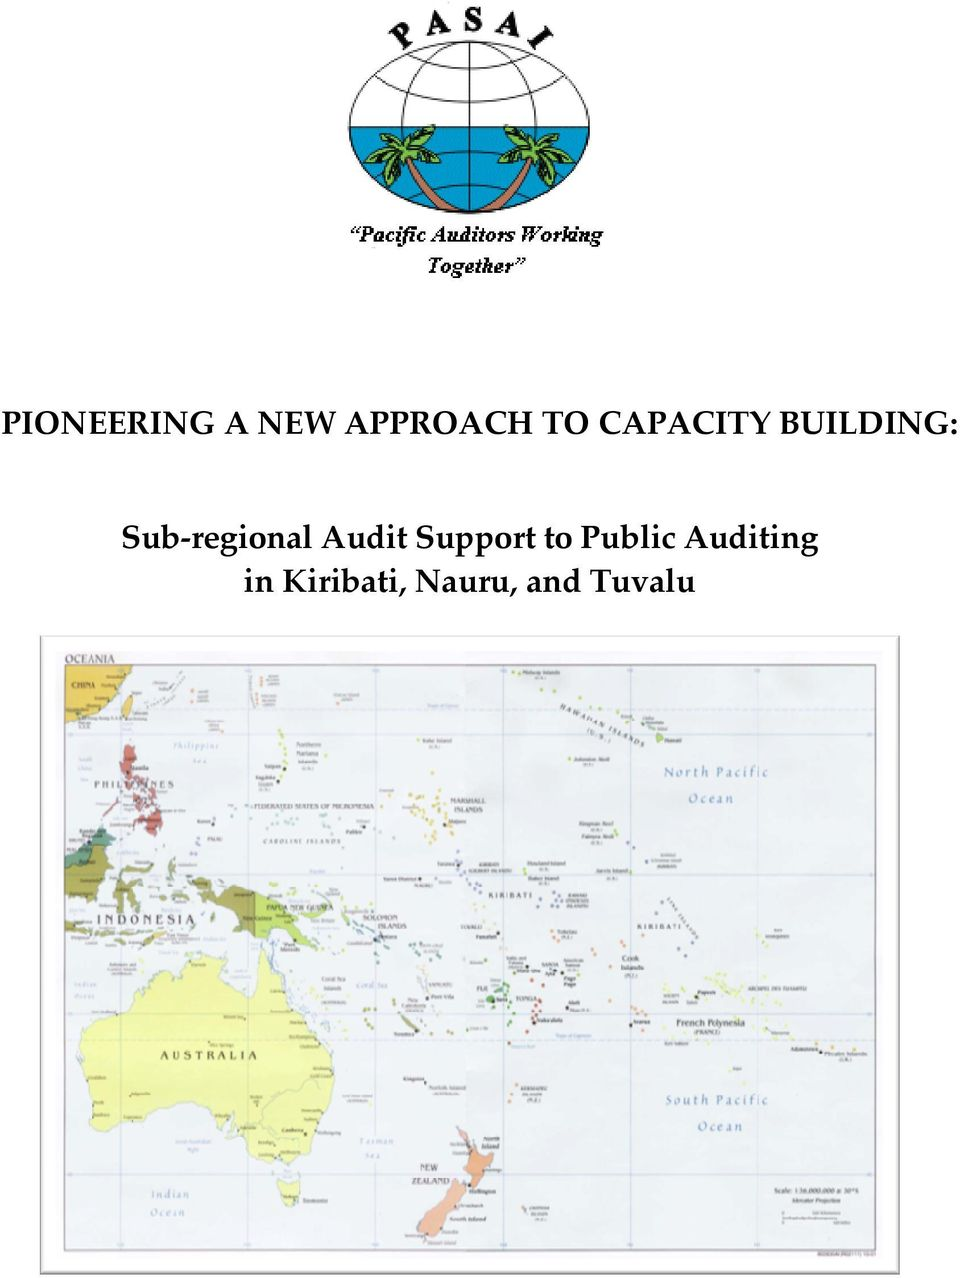 Sub-regional Audit Support to